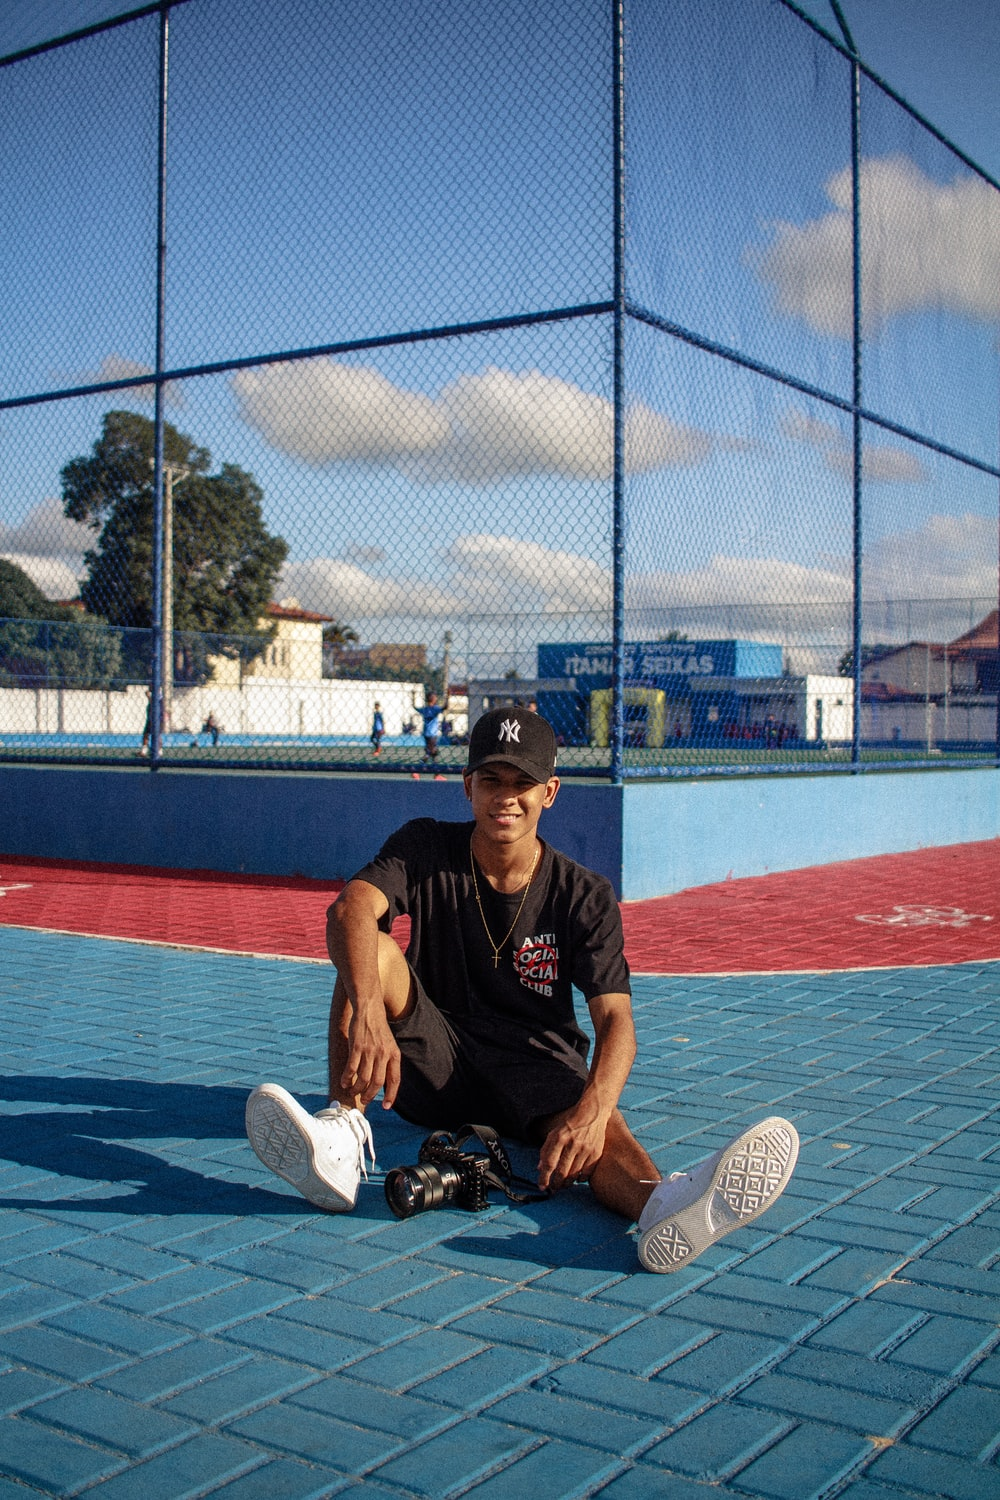 man in black crew neck t-shirt and black pants sitting on tennis court